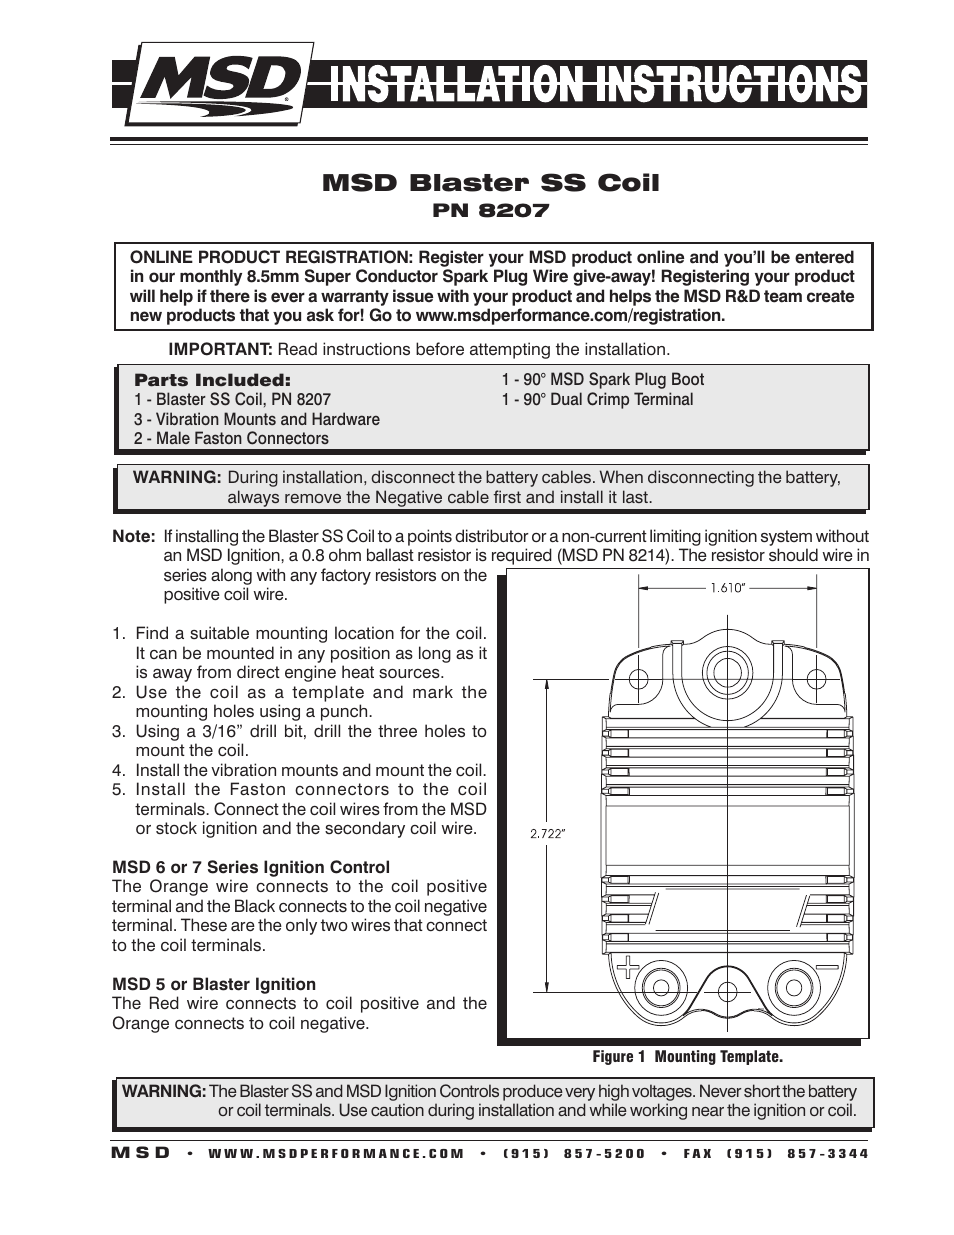 [CSDW_4250]   MSD 8207 Blaster SS Coil Installation User Manual | 2 pages | Blaster Coil Wiring Diagram |  | Manuals Directory